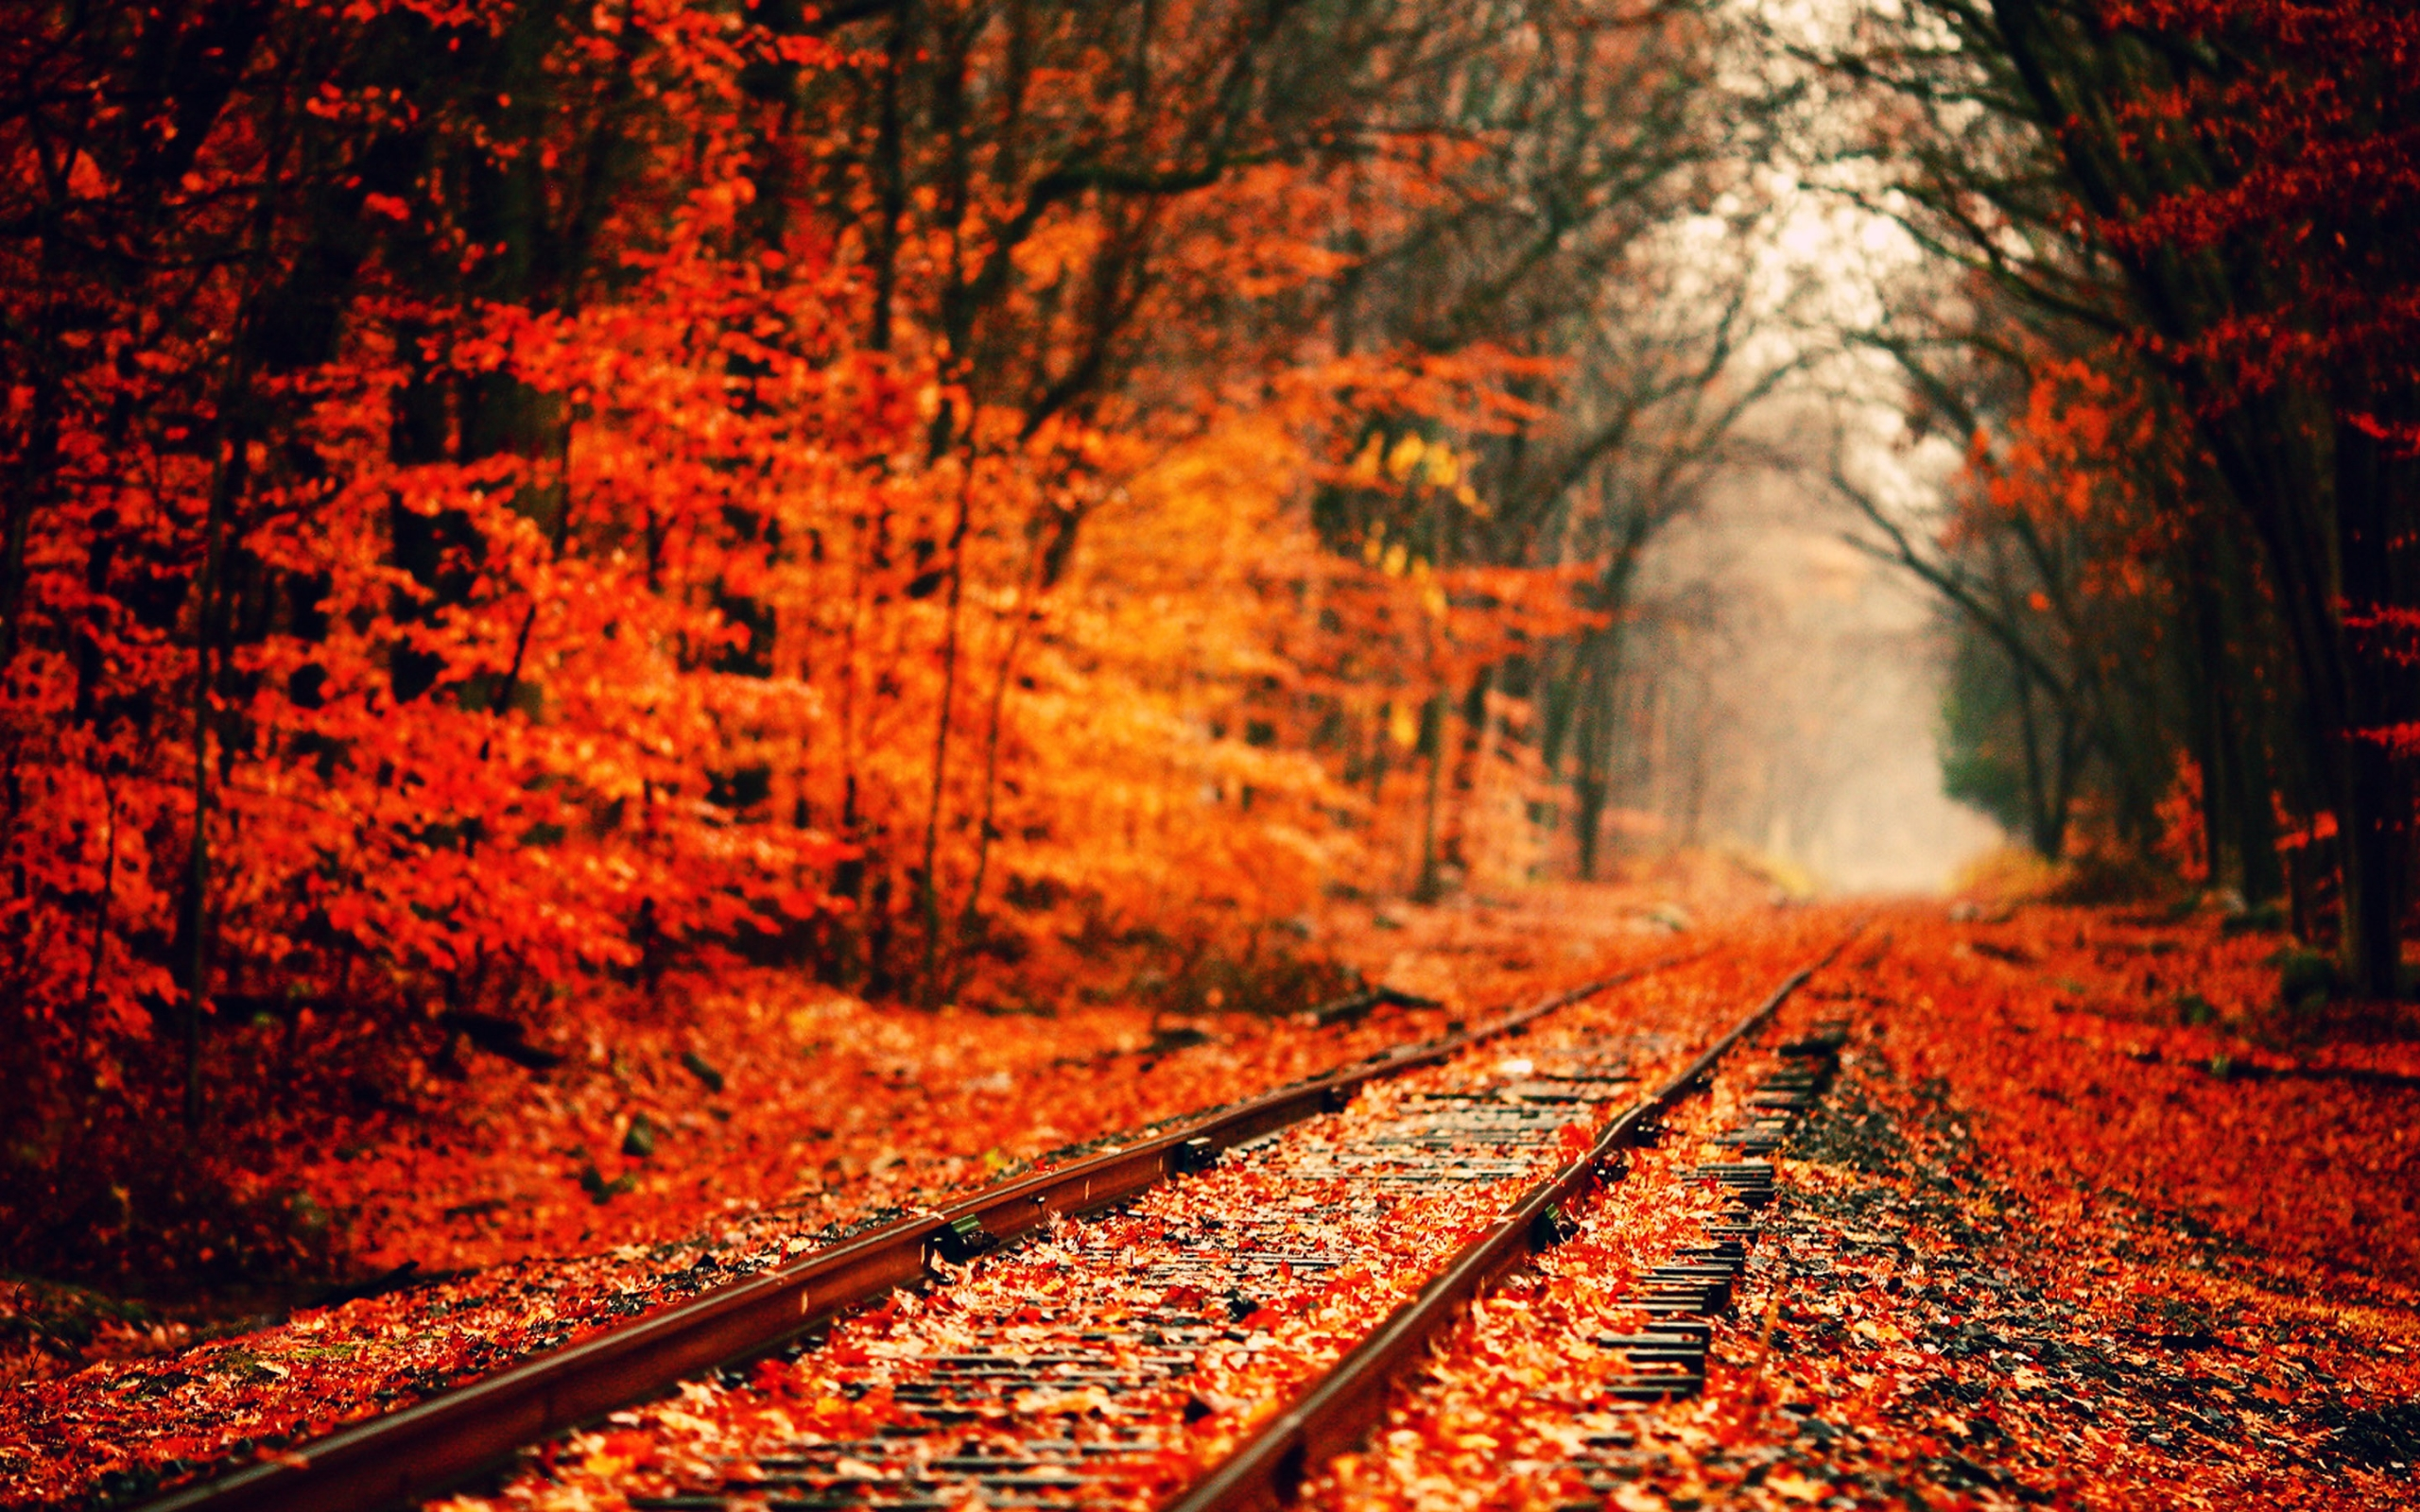 Cool Fall Desktop Wallpaper 8tracks Radio That Fall Aesthetic 11 Songs Free And